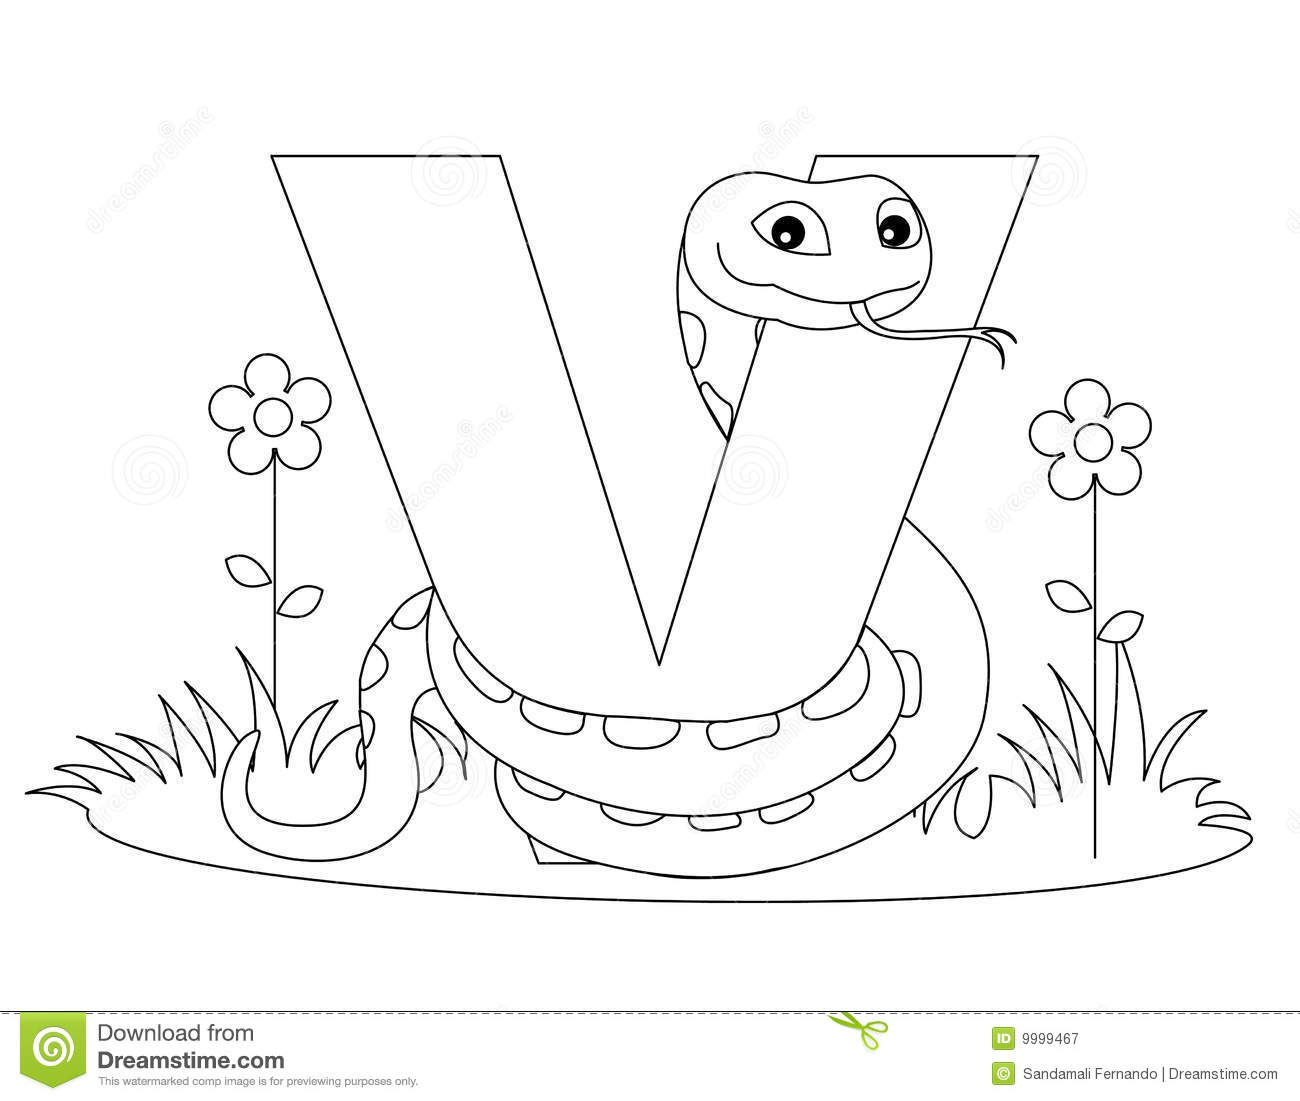 Free animal alphabet coloring pages - Animal Alphabet V Coloring Page Royalty Free Stock Photography